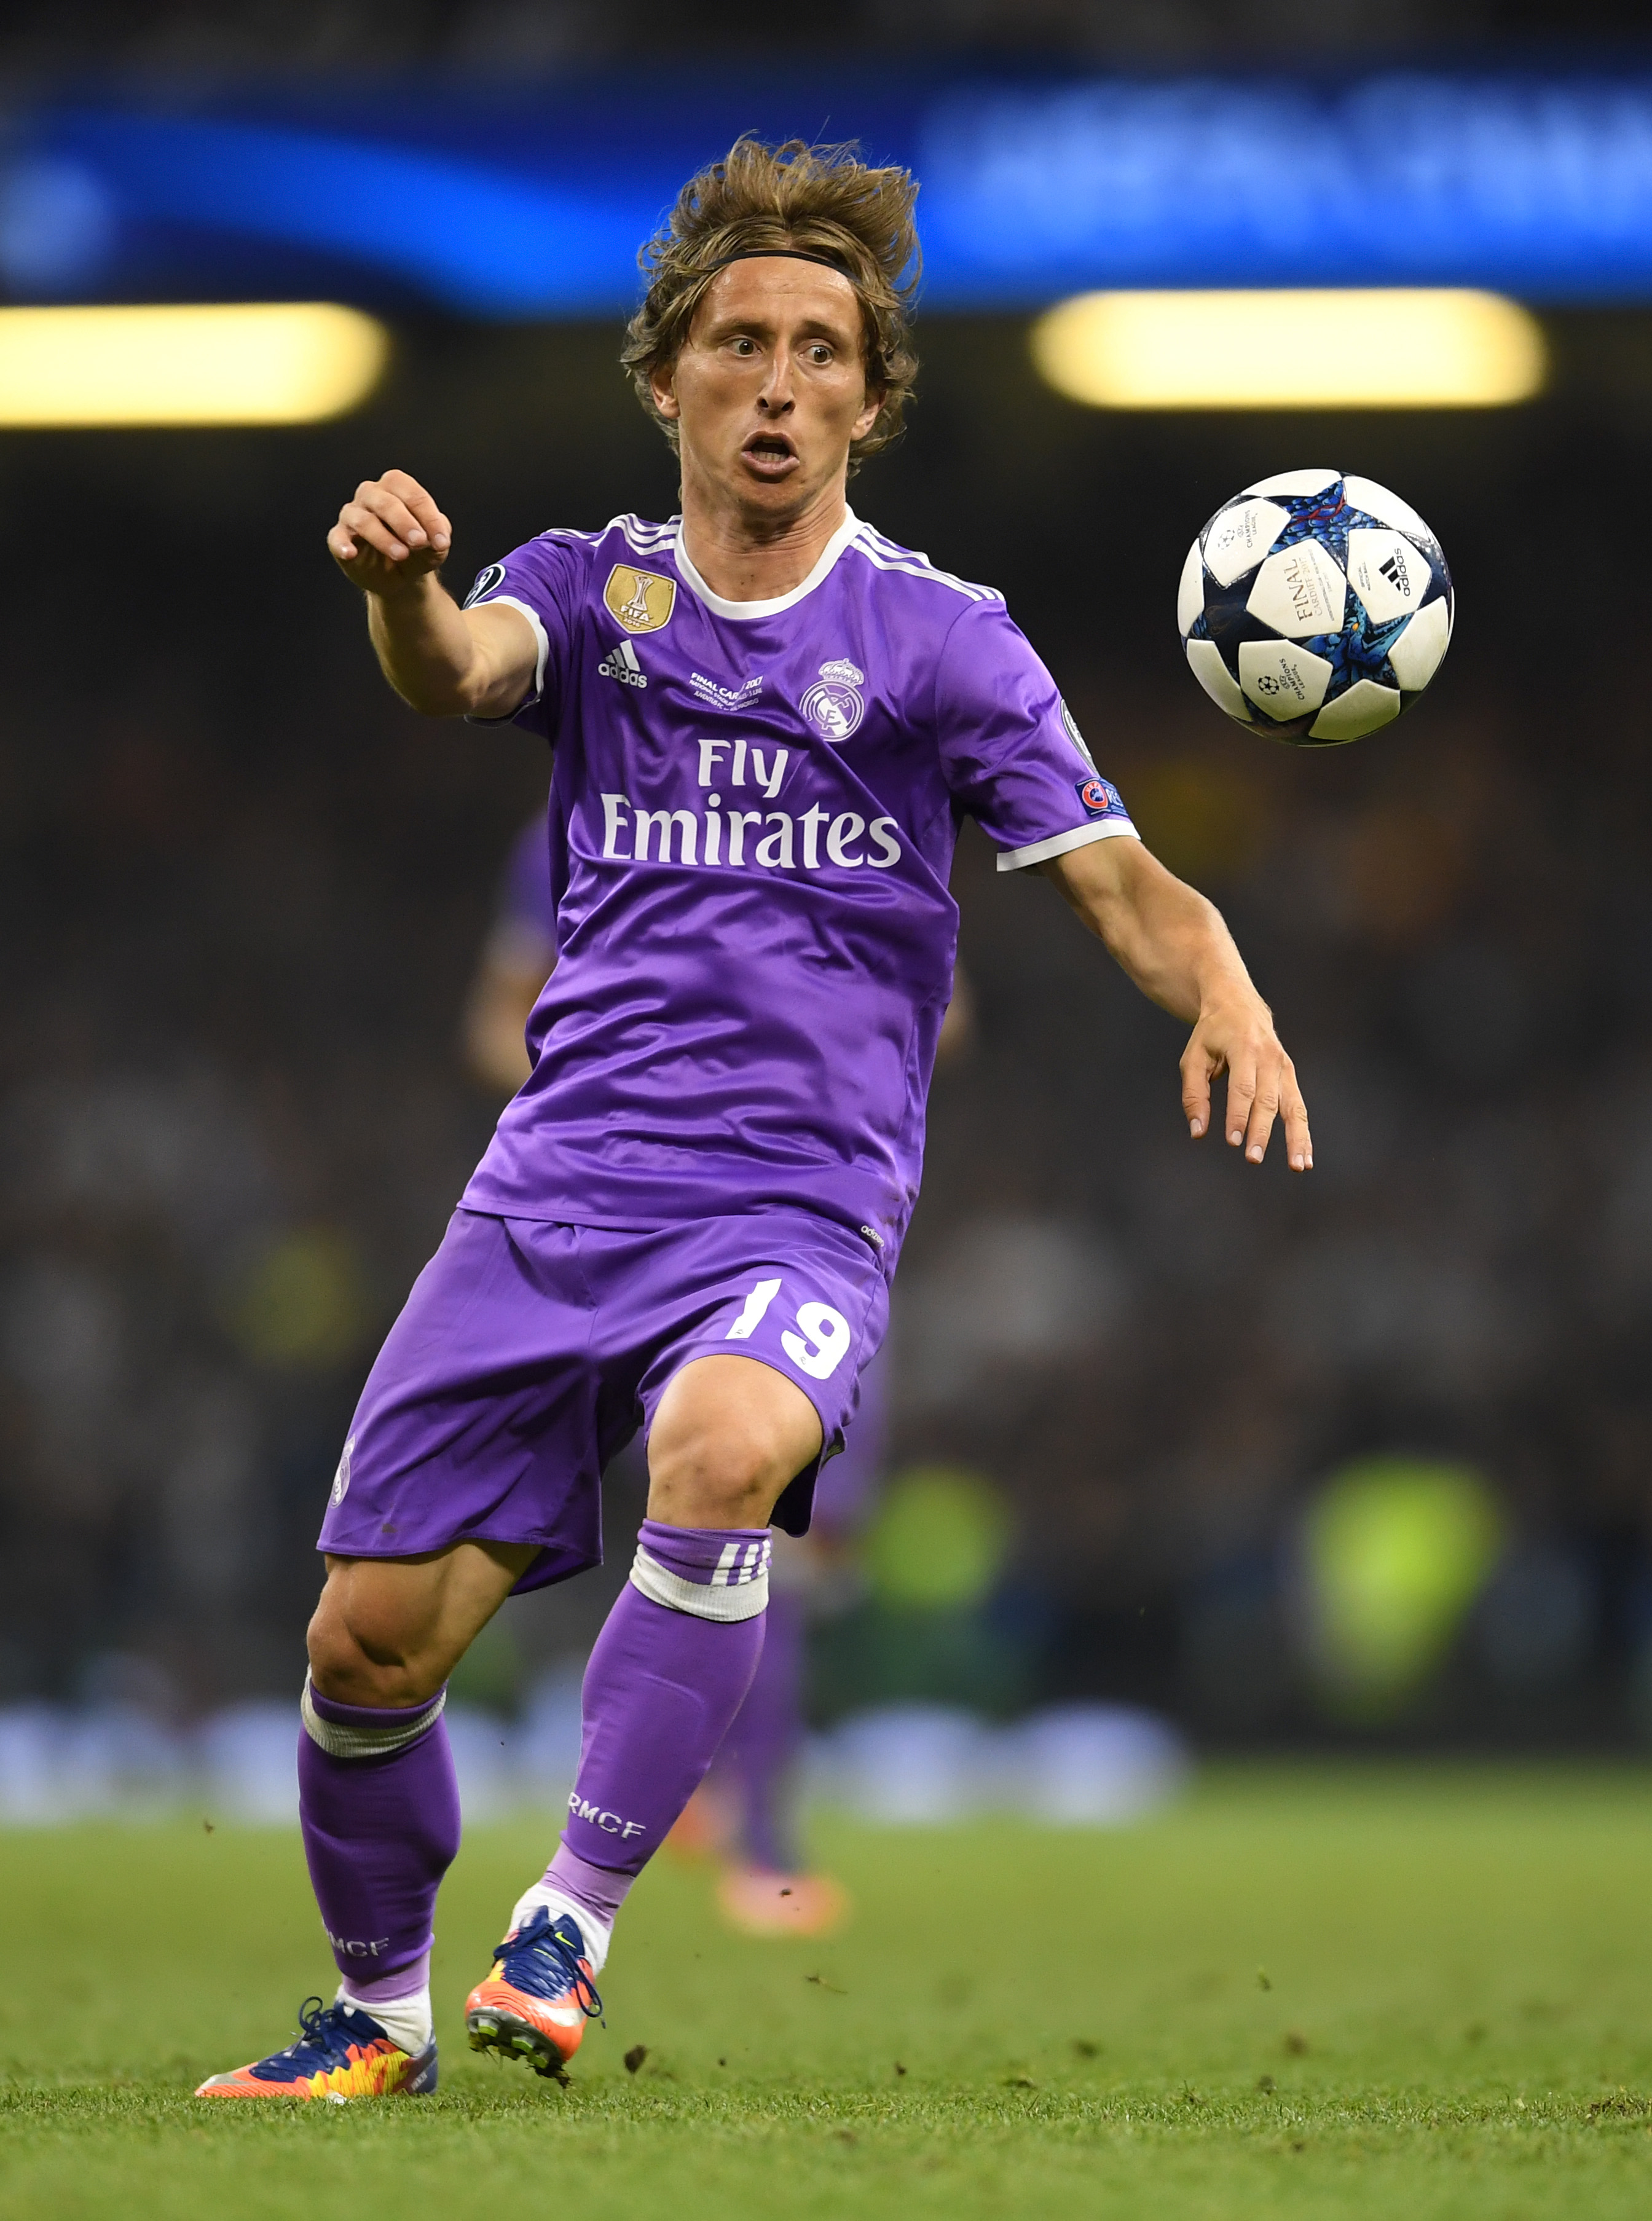 Real Madrid s Luka Modrić could be facing jail time for perjury